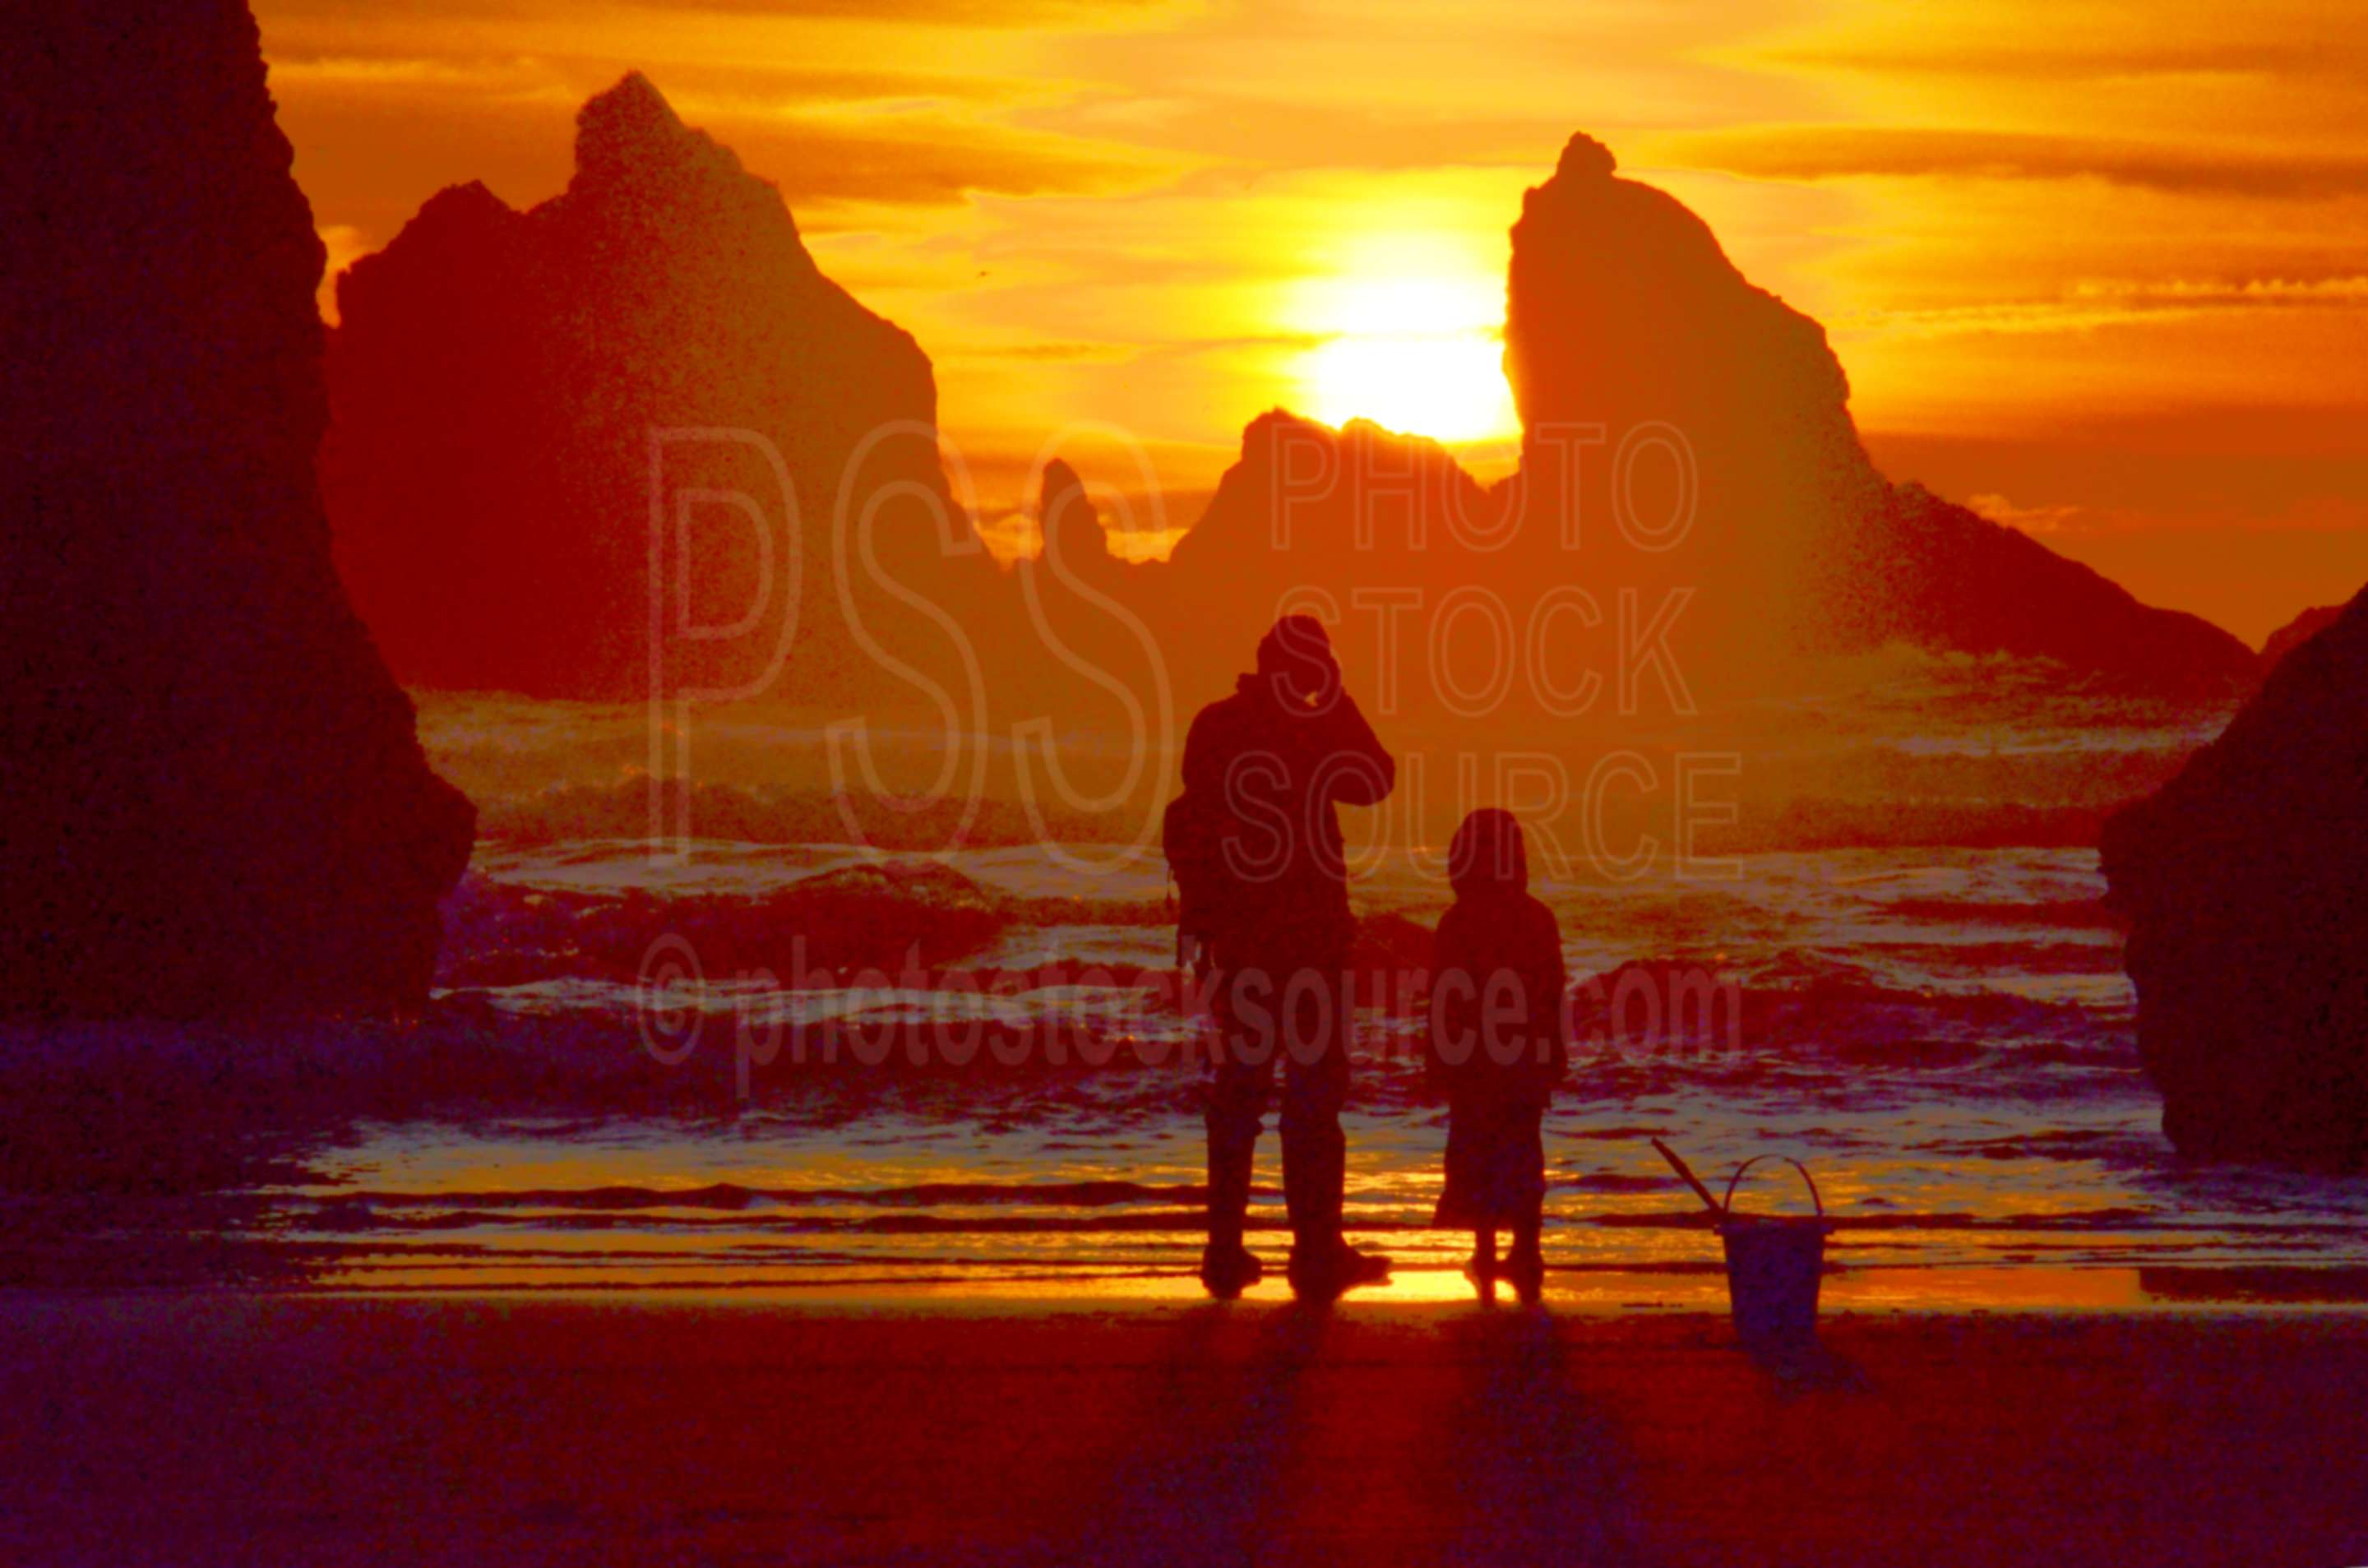 Sea Stacks at Sunset,sea stack,rock,beach,sunset,man